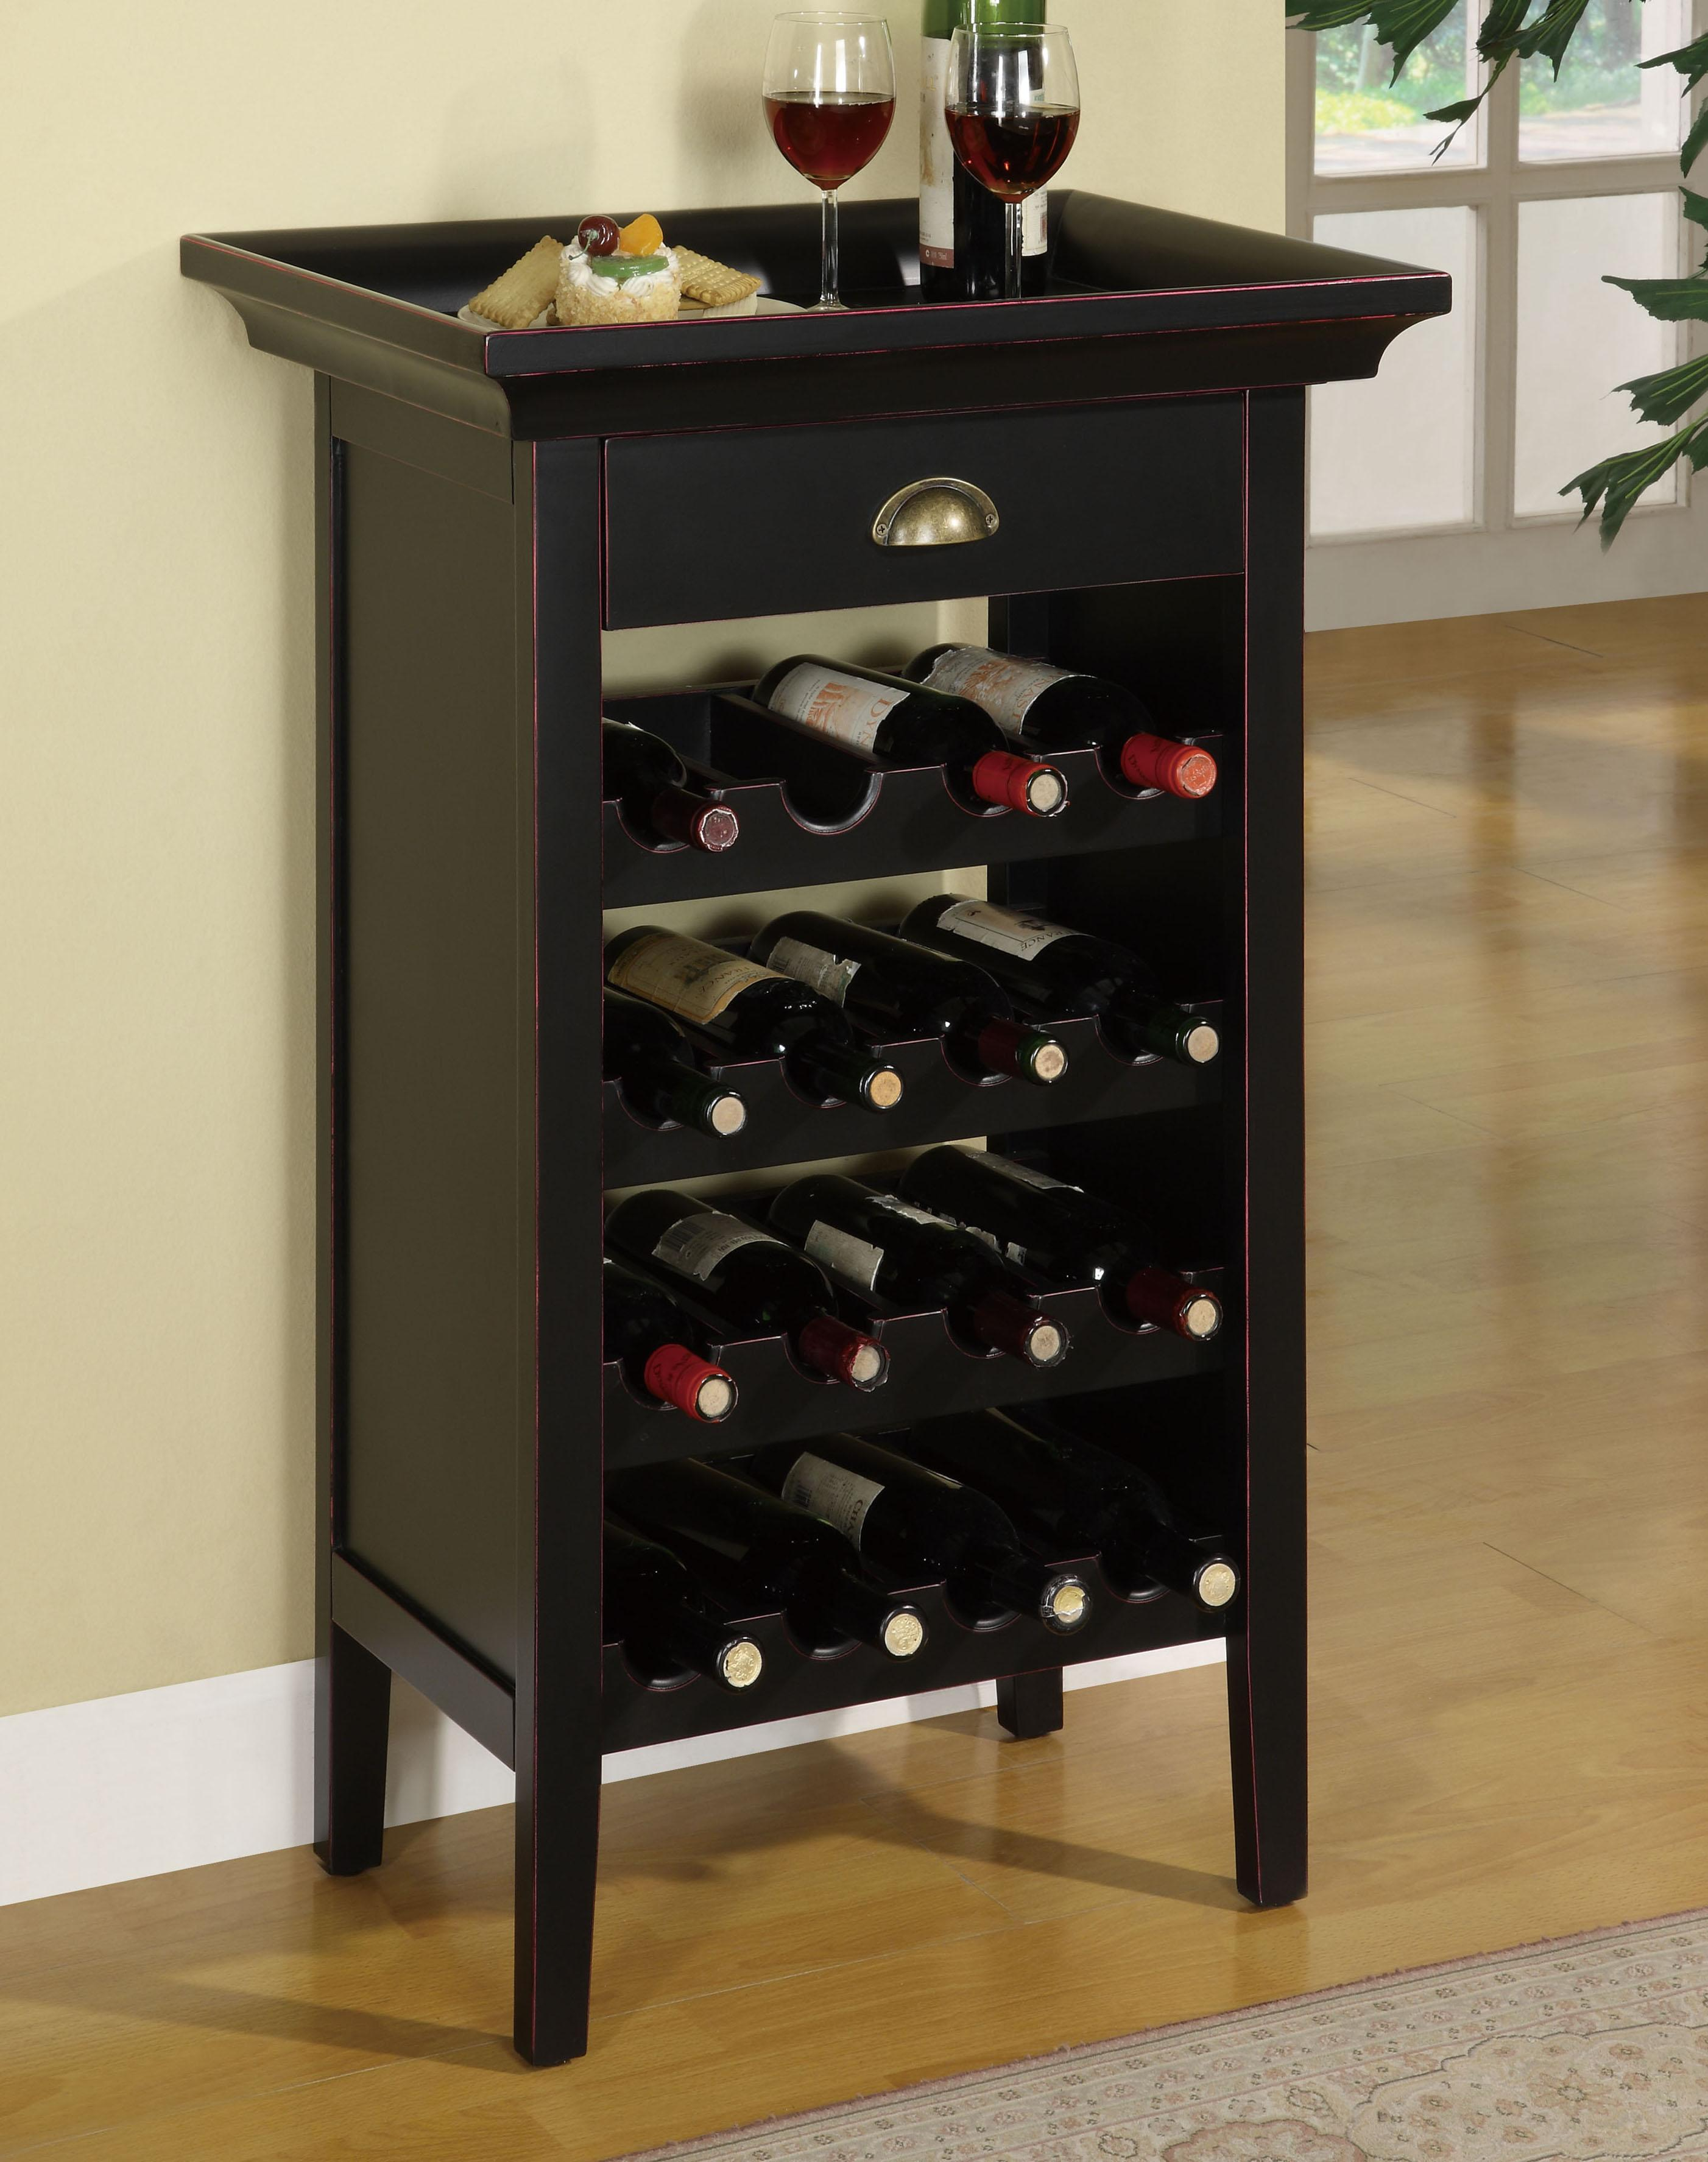 black wine cabinet. Powell Contemporary Black Wine Cabinet - Item Number: 502-426 2